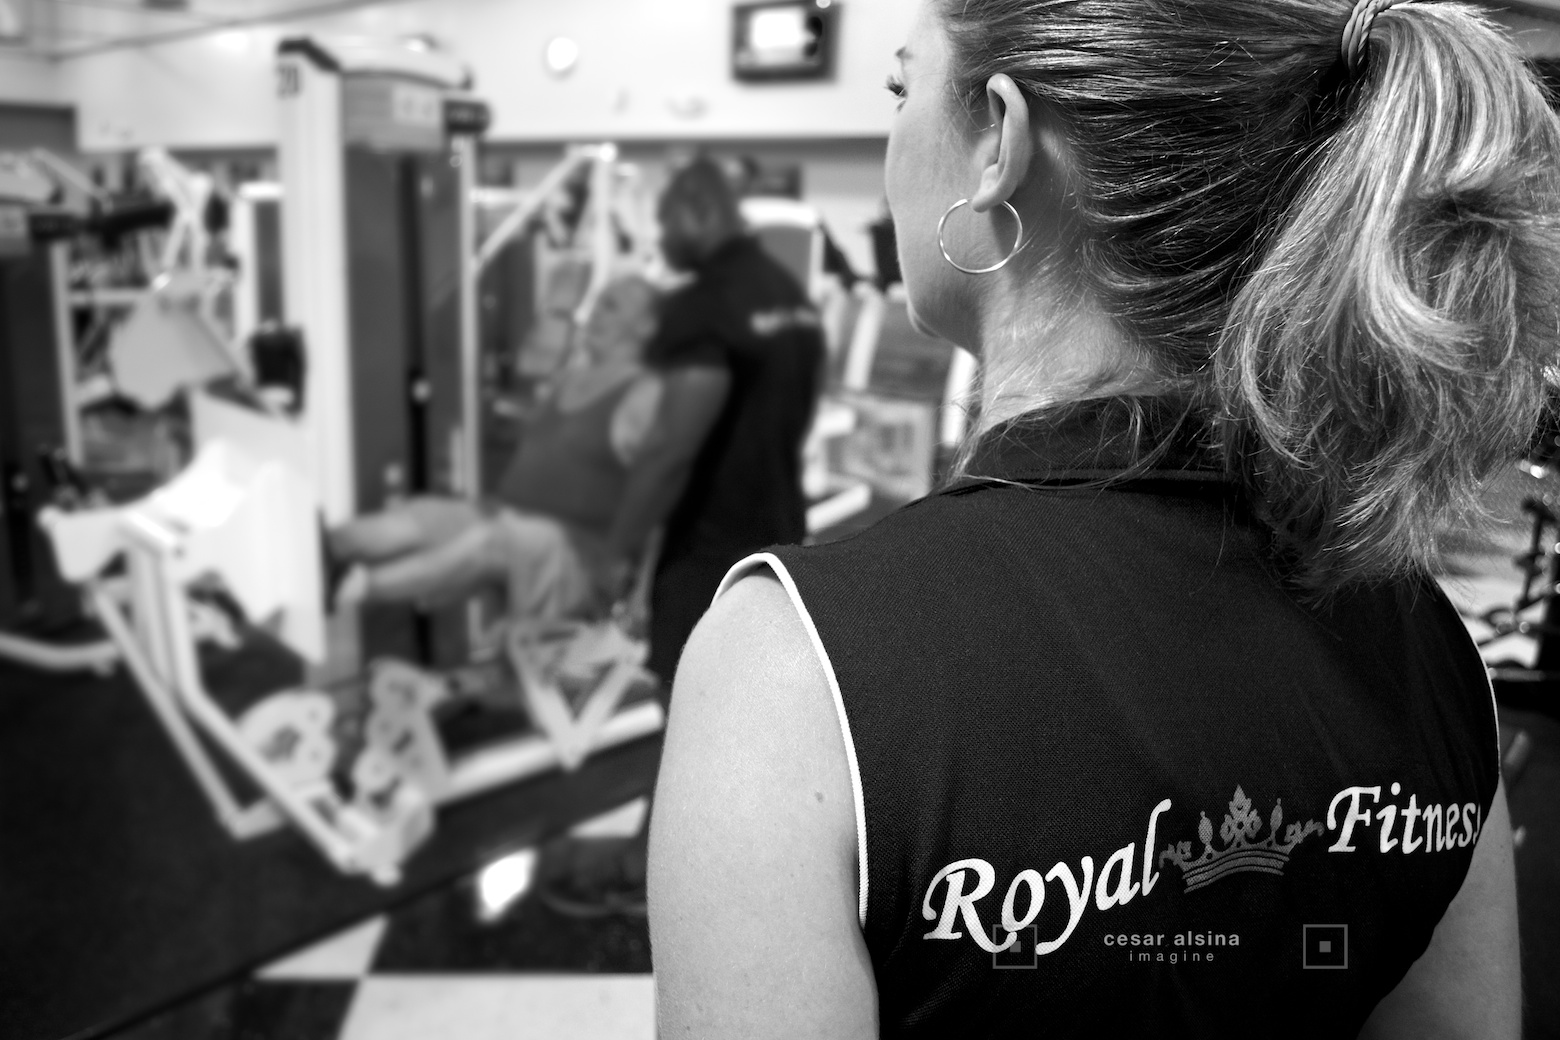 Royal Fitness Gym Training